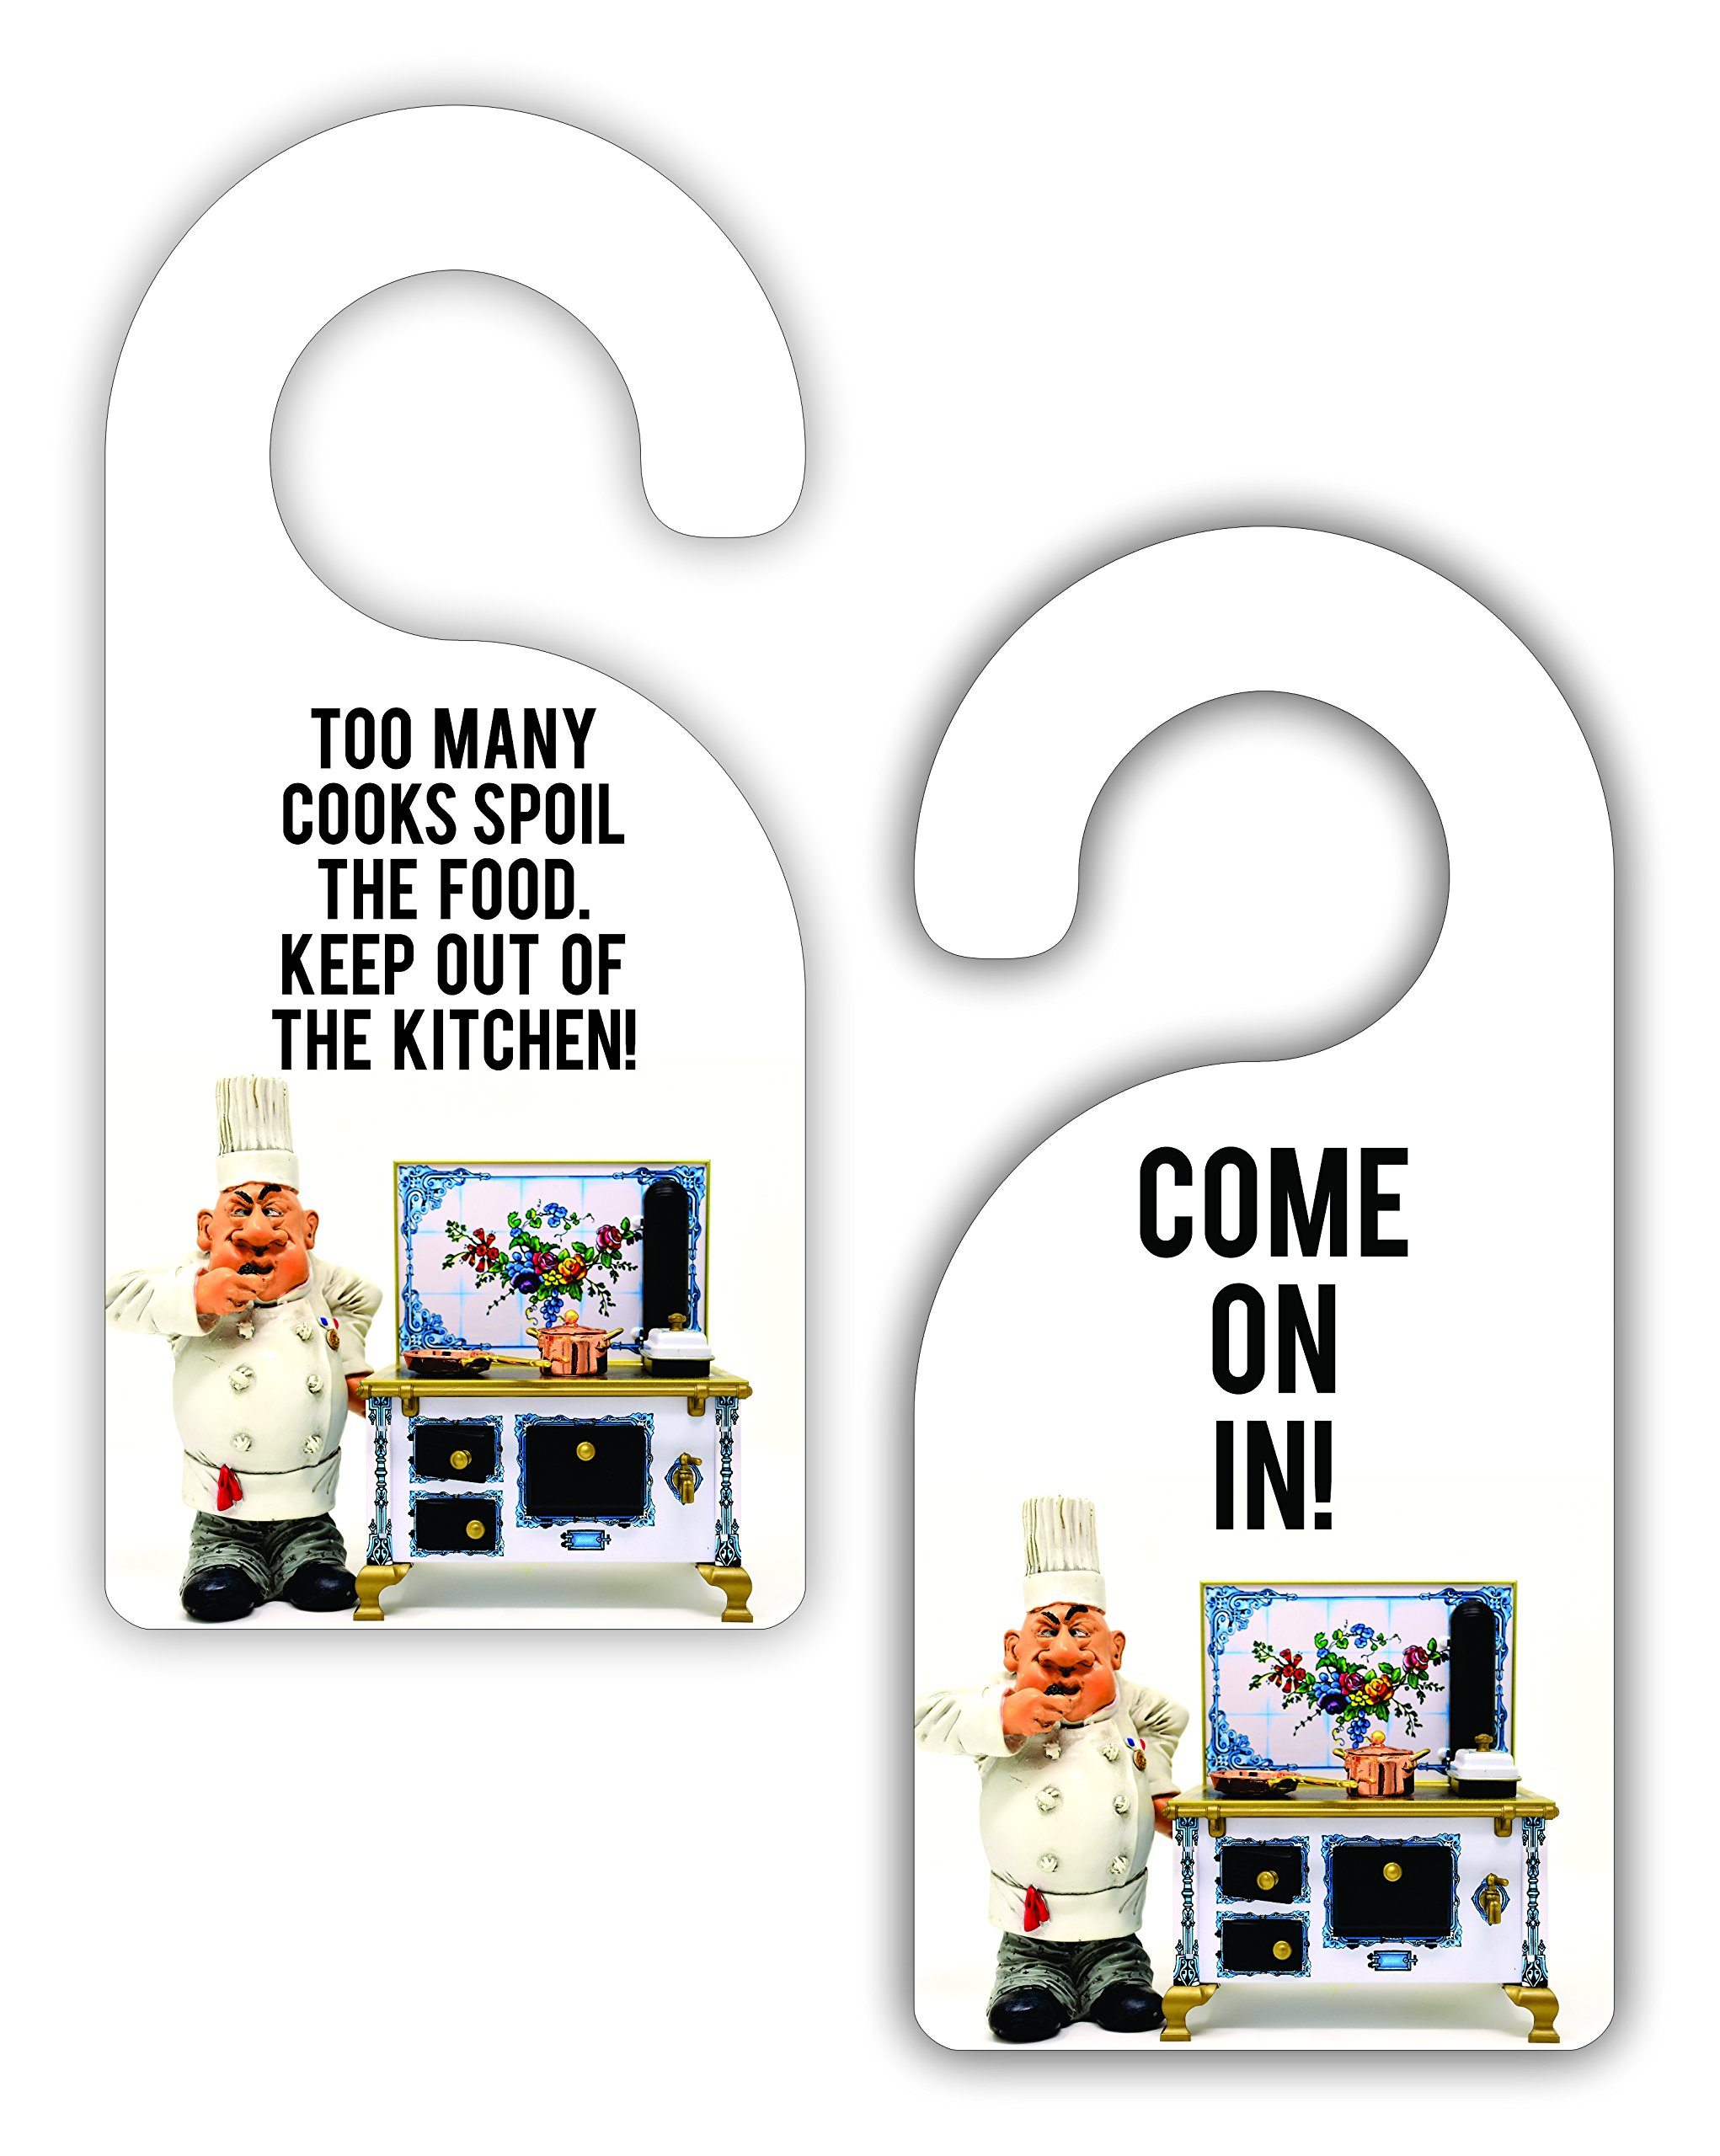 Too Many Cooks Spoil The Food.. Kitchen Room Door Sign Hanger - Double Sided - Hard Plastic - Glossy Finish